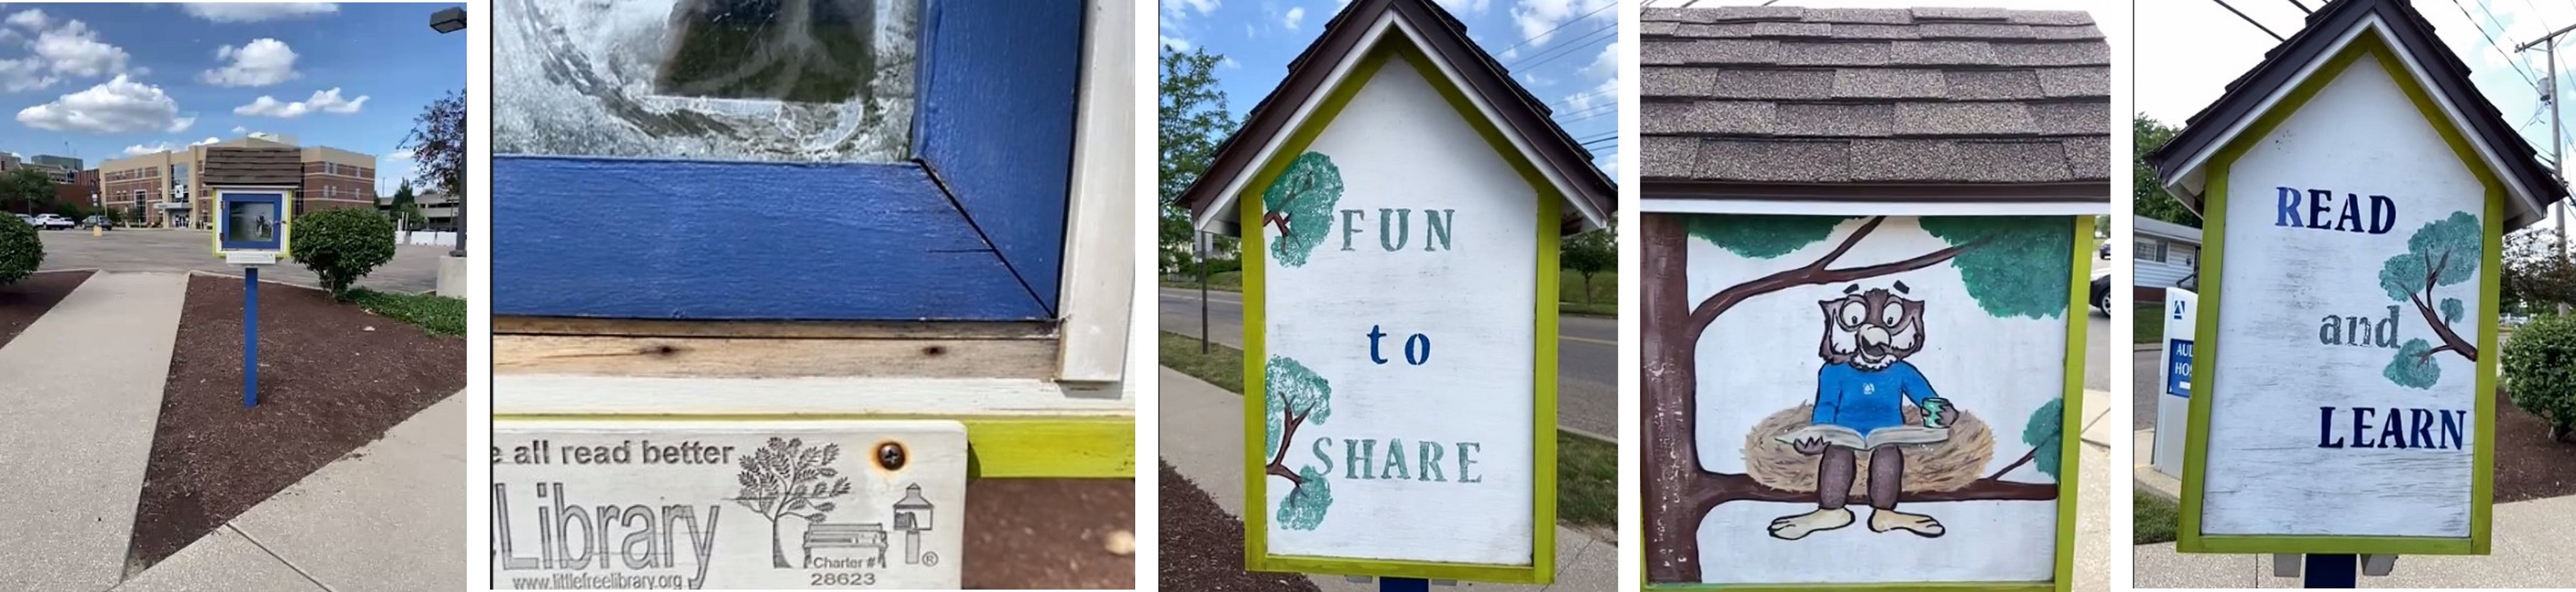 Little Free Library: Building Community During the Pandemic